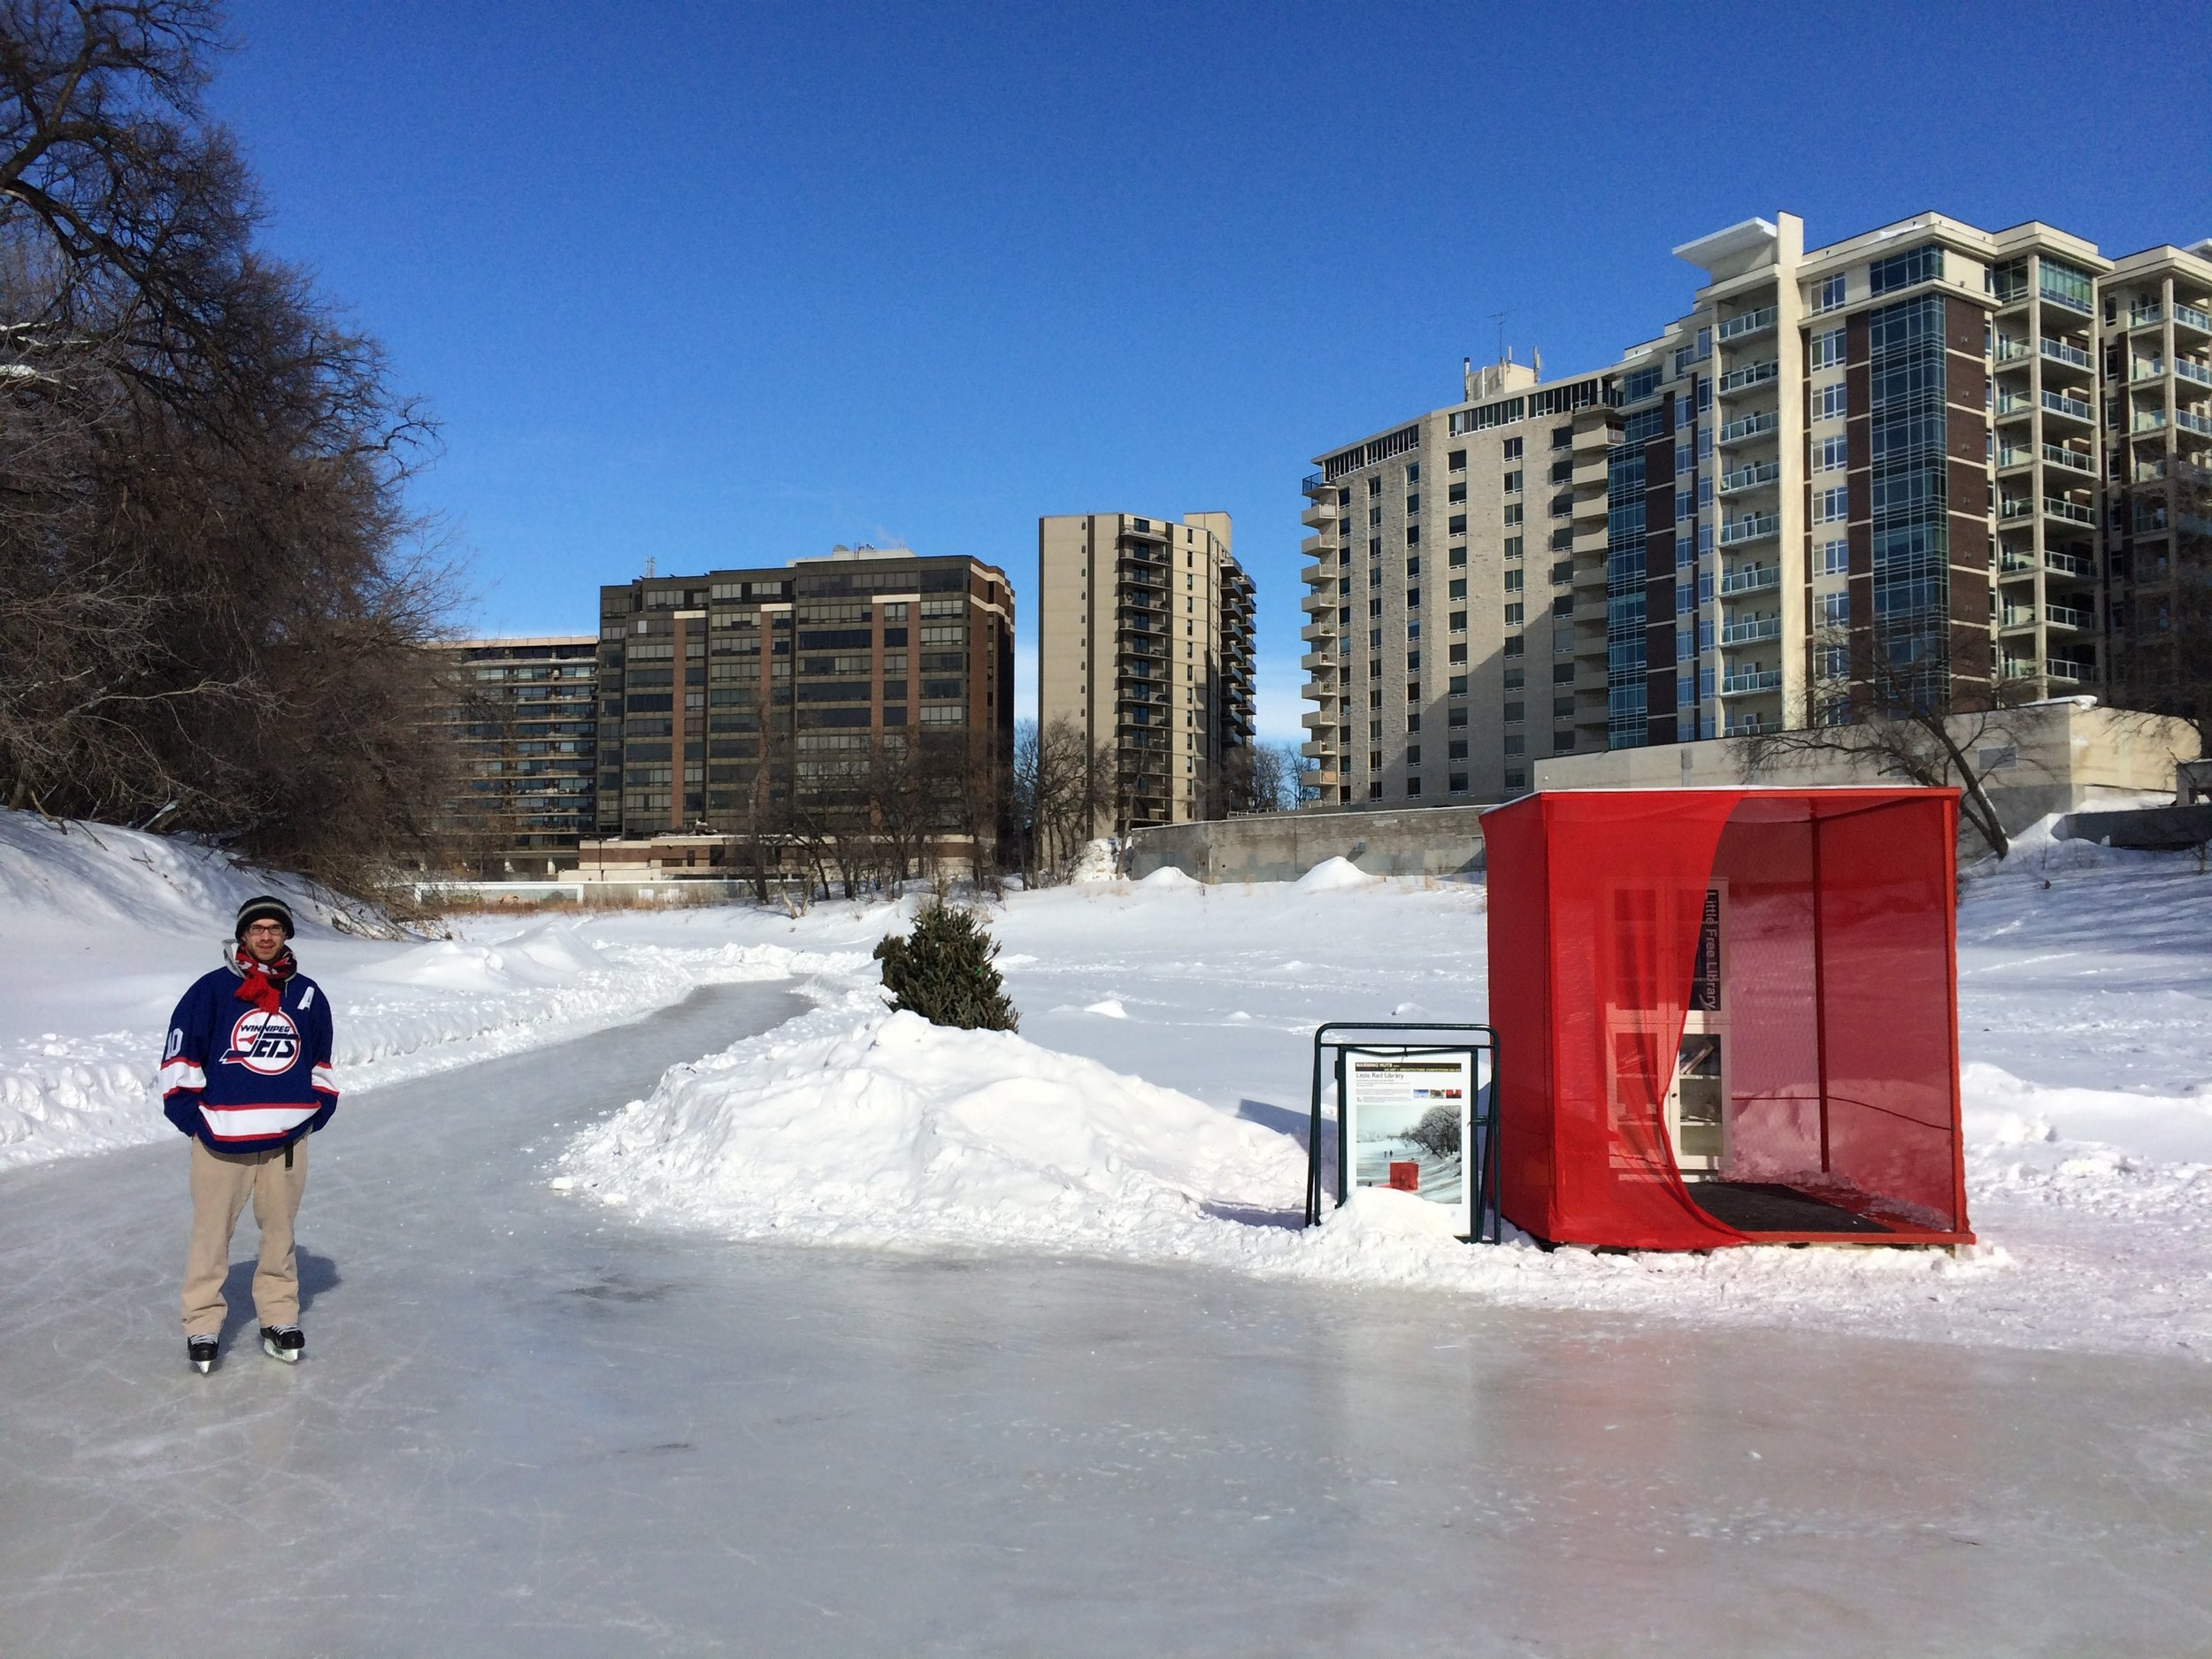 Alex shown in his adopted hometown of Winnipeg, Manitoba, Canada